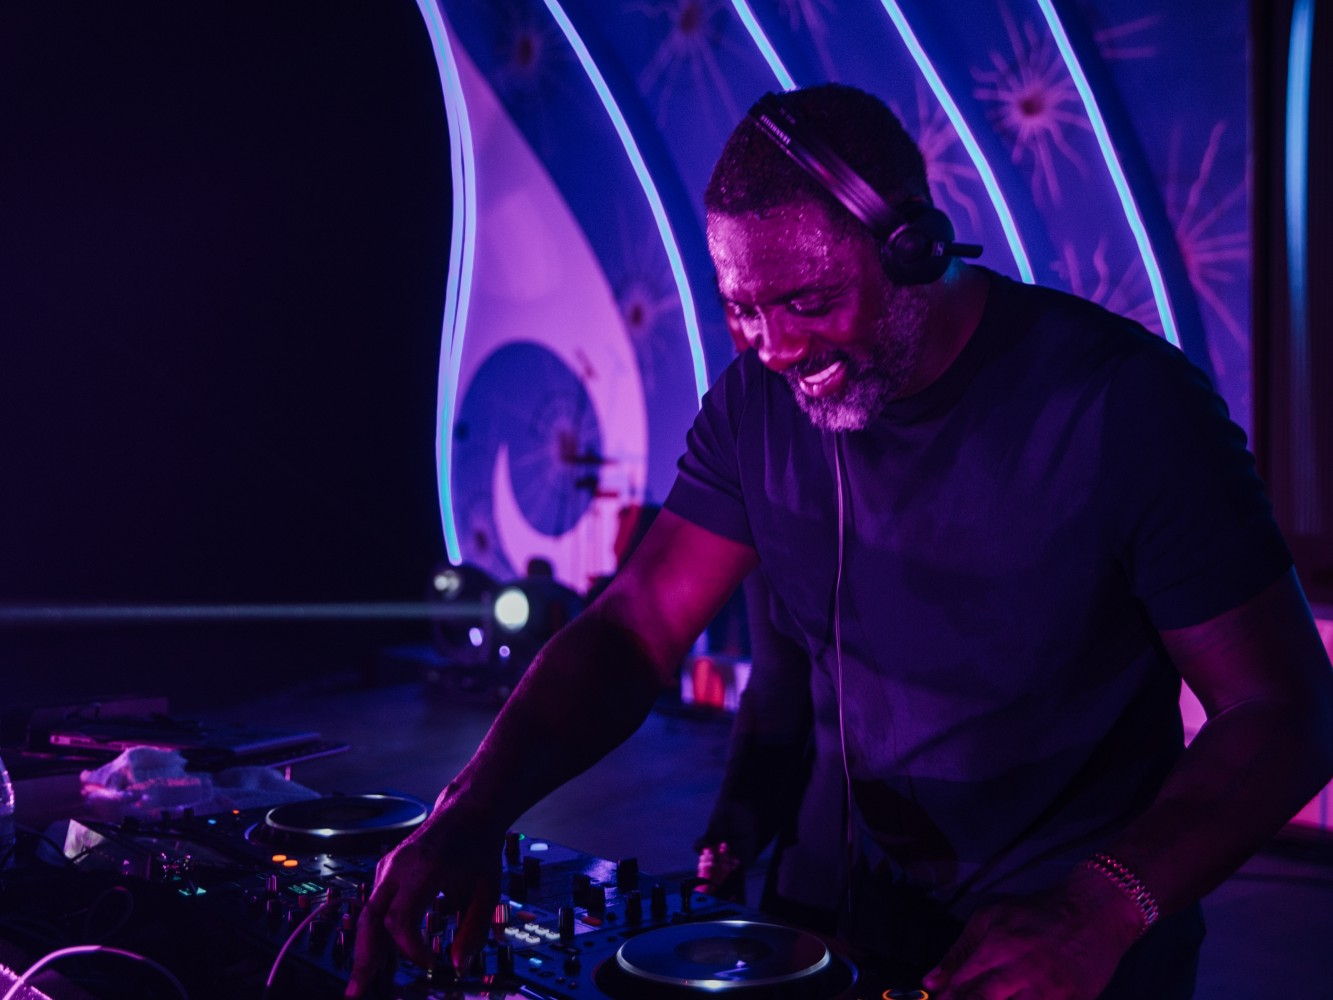 Idris Elba headlining the New Year's Eve celebrations at One&Only Reethi Rah in the Maldives with an energetic DJ set